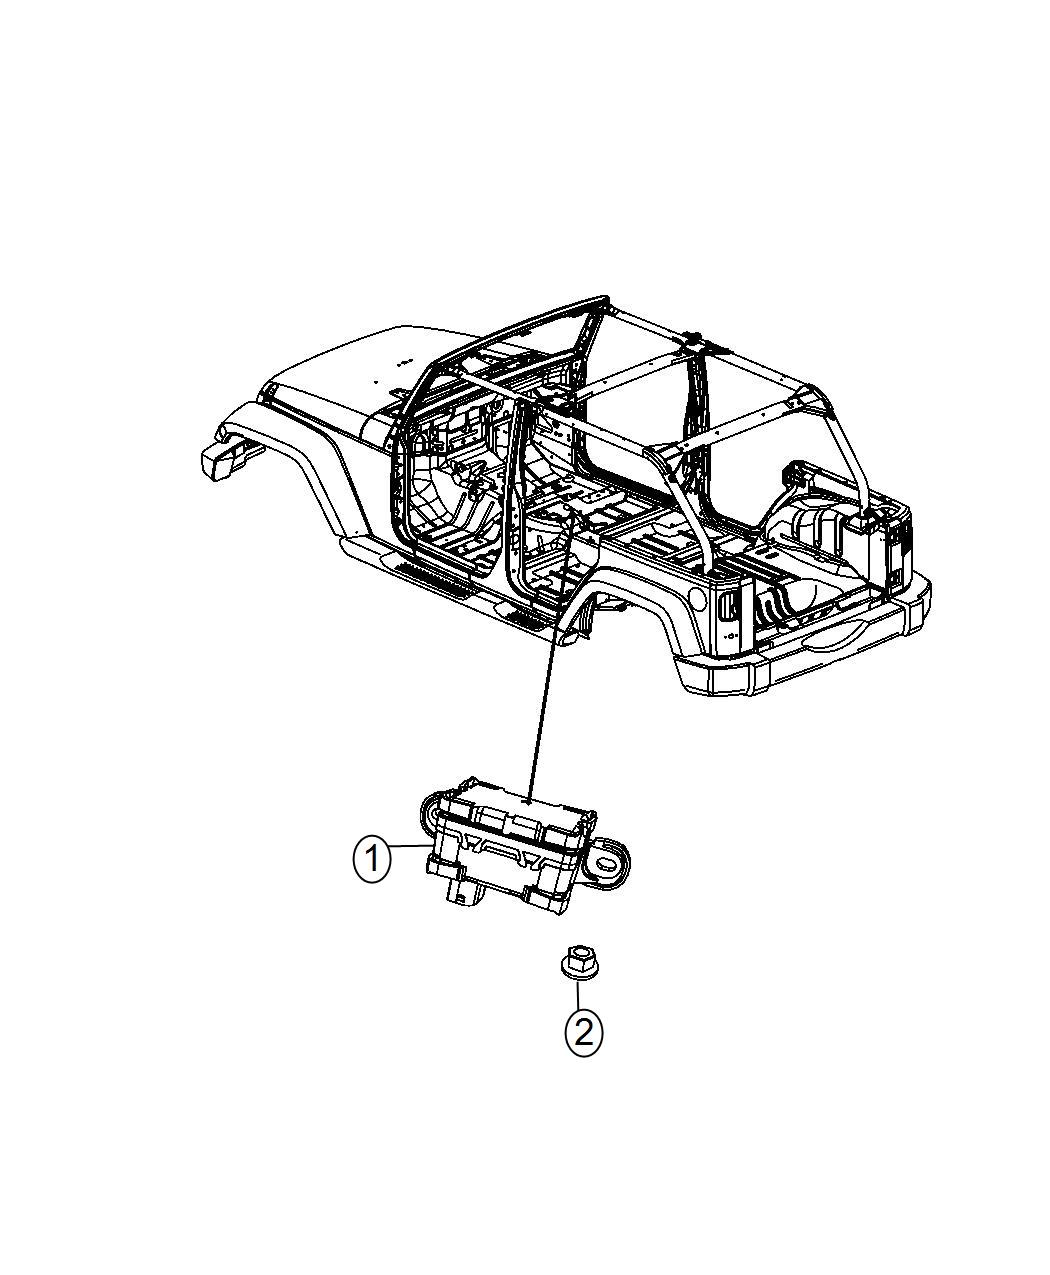 Jeep Wrangler Sensor Dynamics Used For Lateral